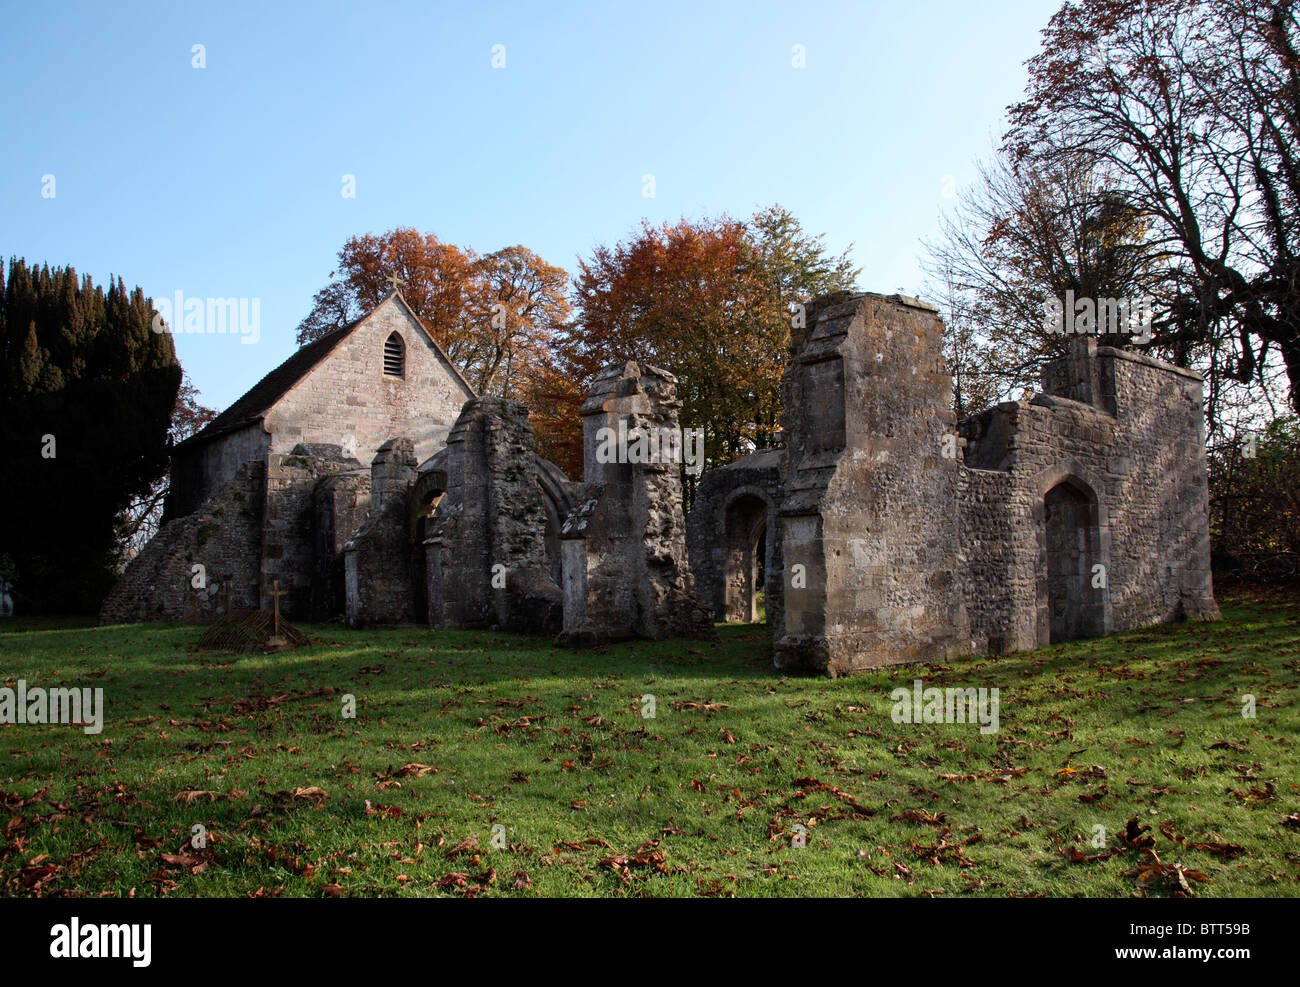 Redundant church of St Leonards, Sutton Veny, Wiltshire - Stock Image